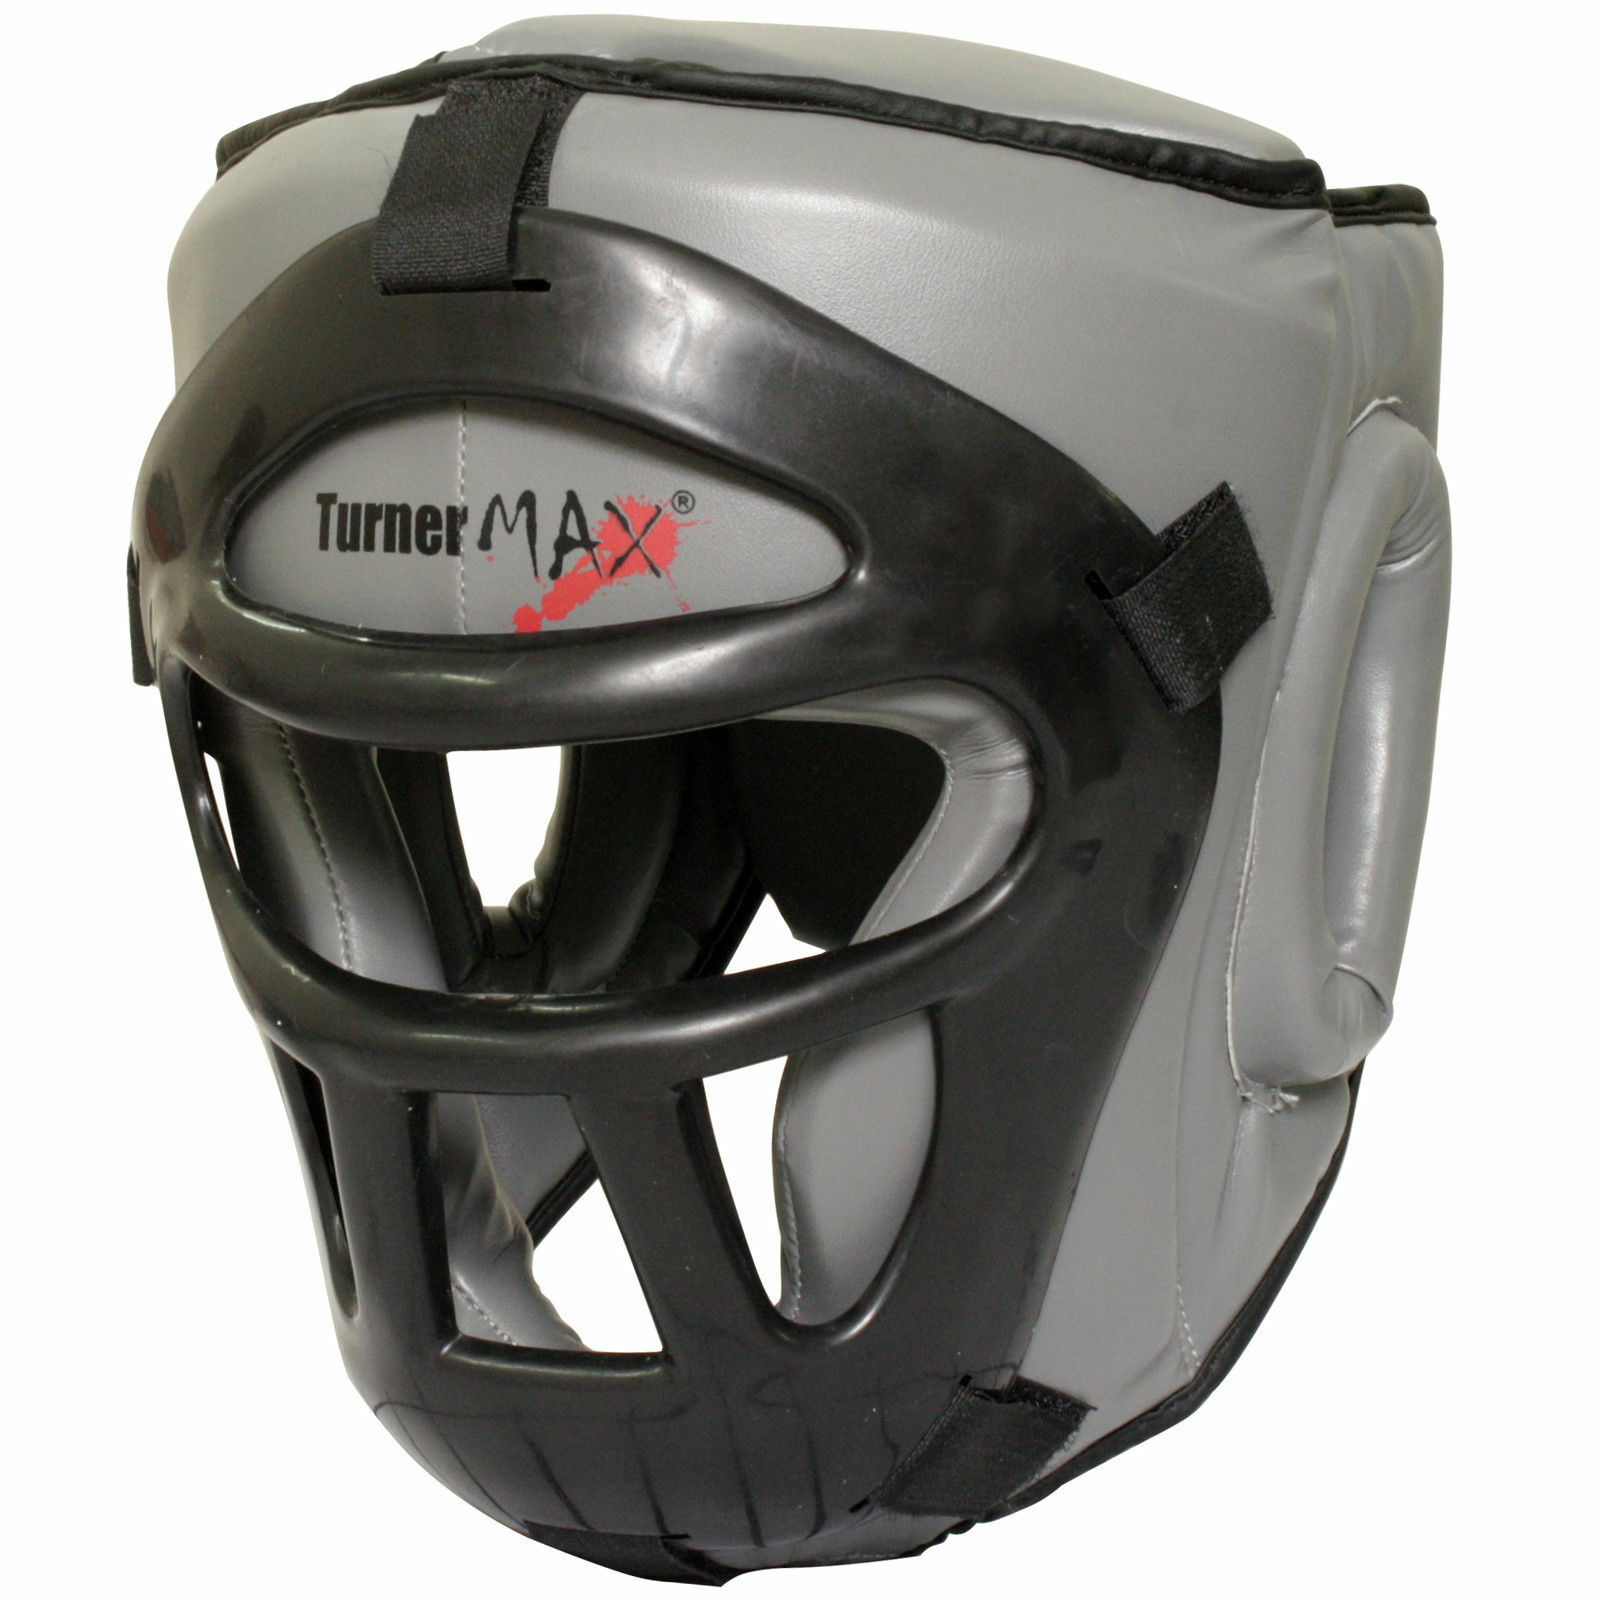 TurnerMAX Head Guard Boxing Protection Helmet with Removable Face Mask Grey